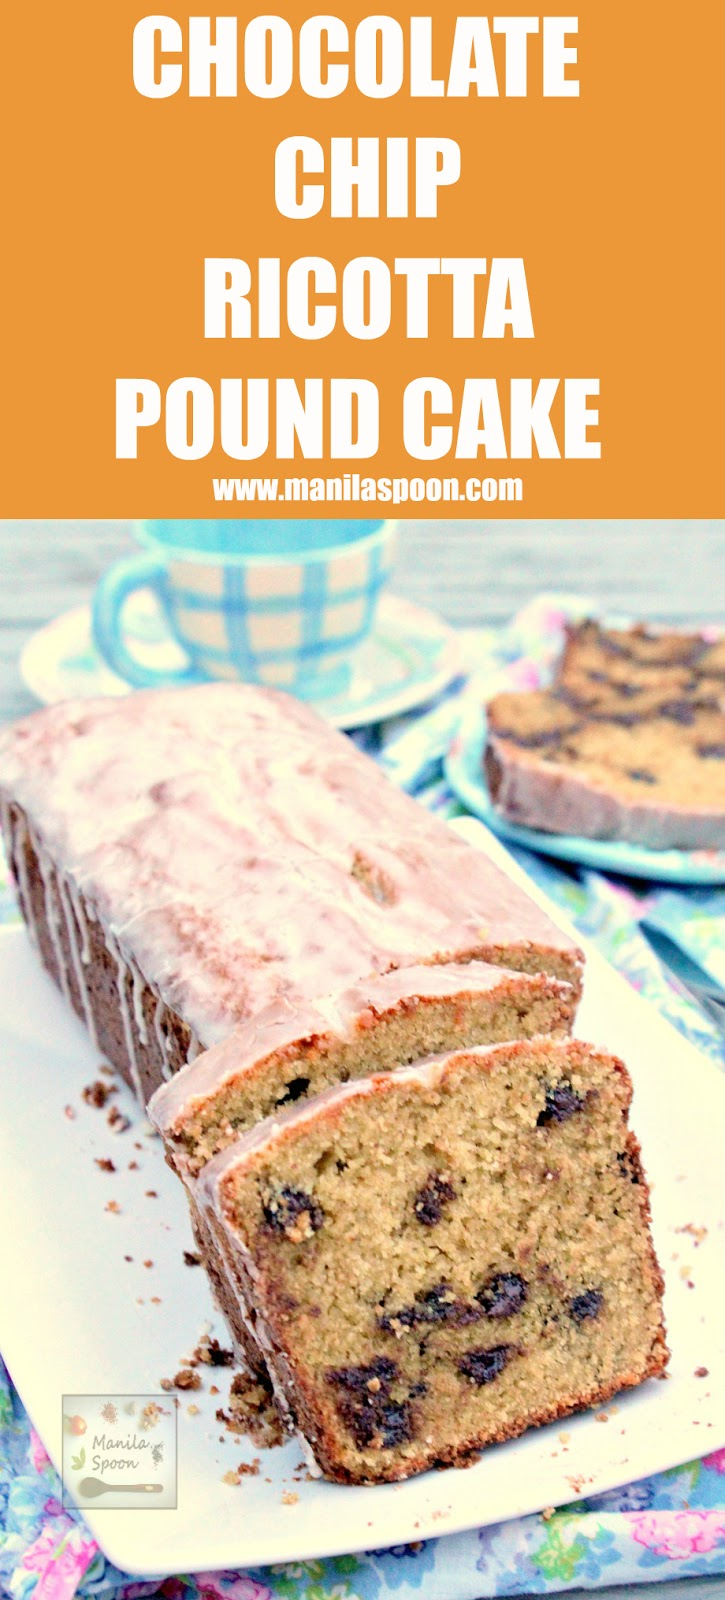 Chocolate Chips and Ricotta Cheese lend a lot of flavor to this moist and delicious pound cake. Perfect with coffee or a cup of tea and certainly as dessert served with fruit or whipped cream! | manilaspoon.com